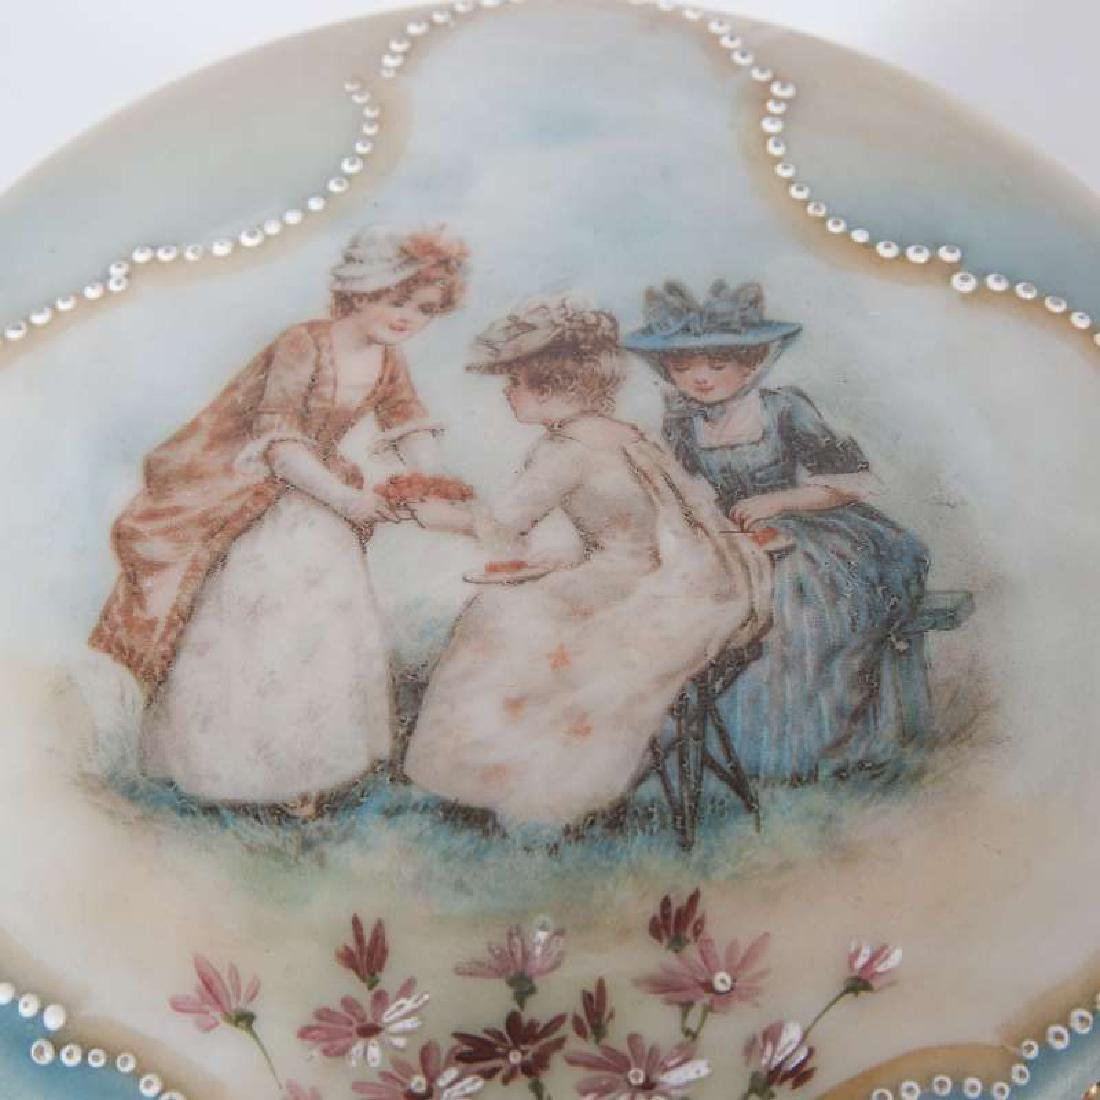 A LARGE MONROE GLASS NAKARA BOX WITH BERRY LADIES - 8